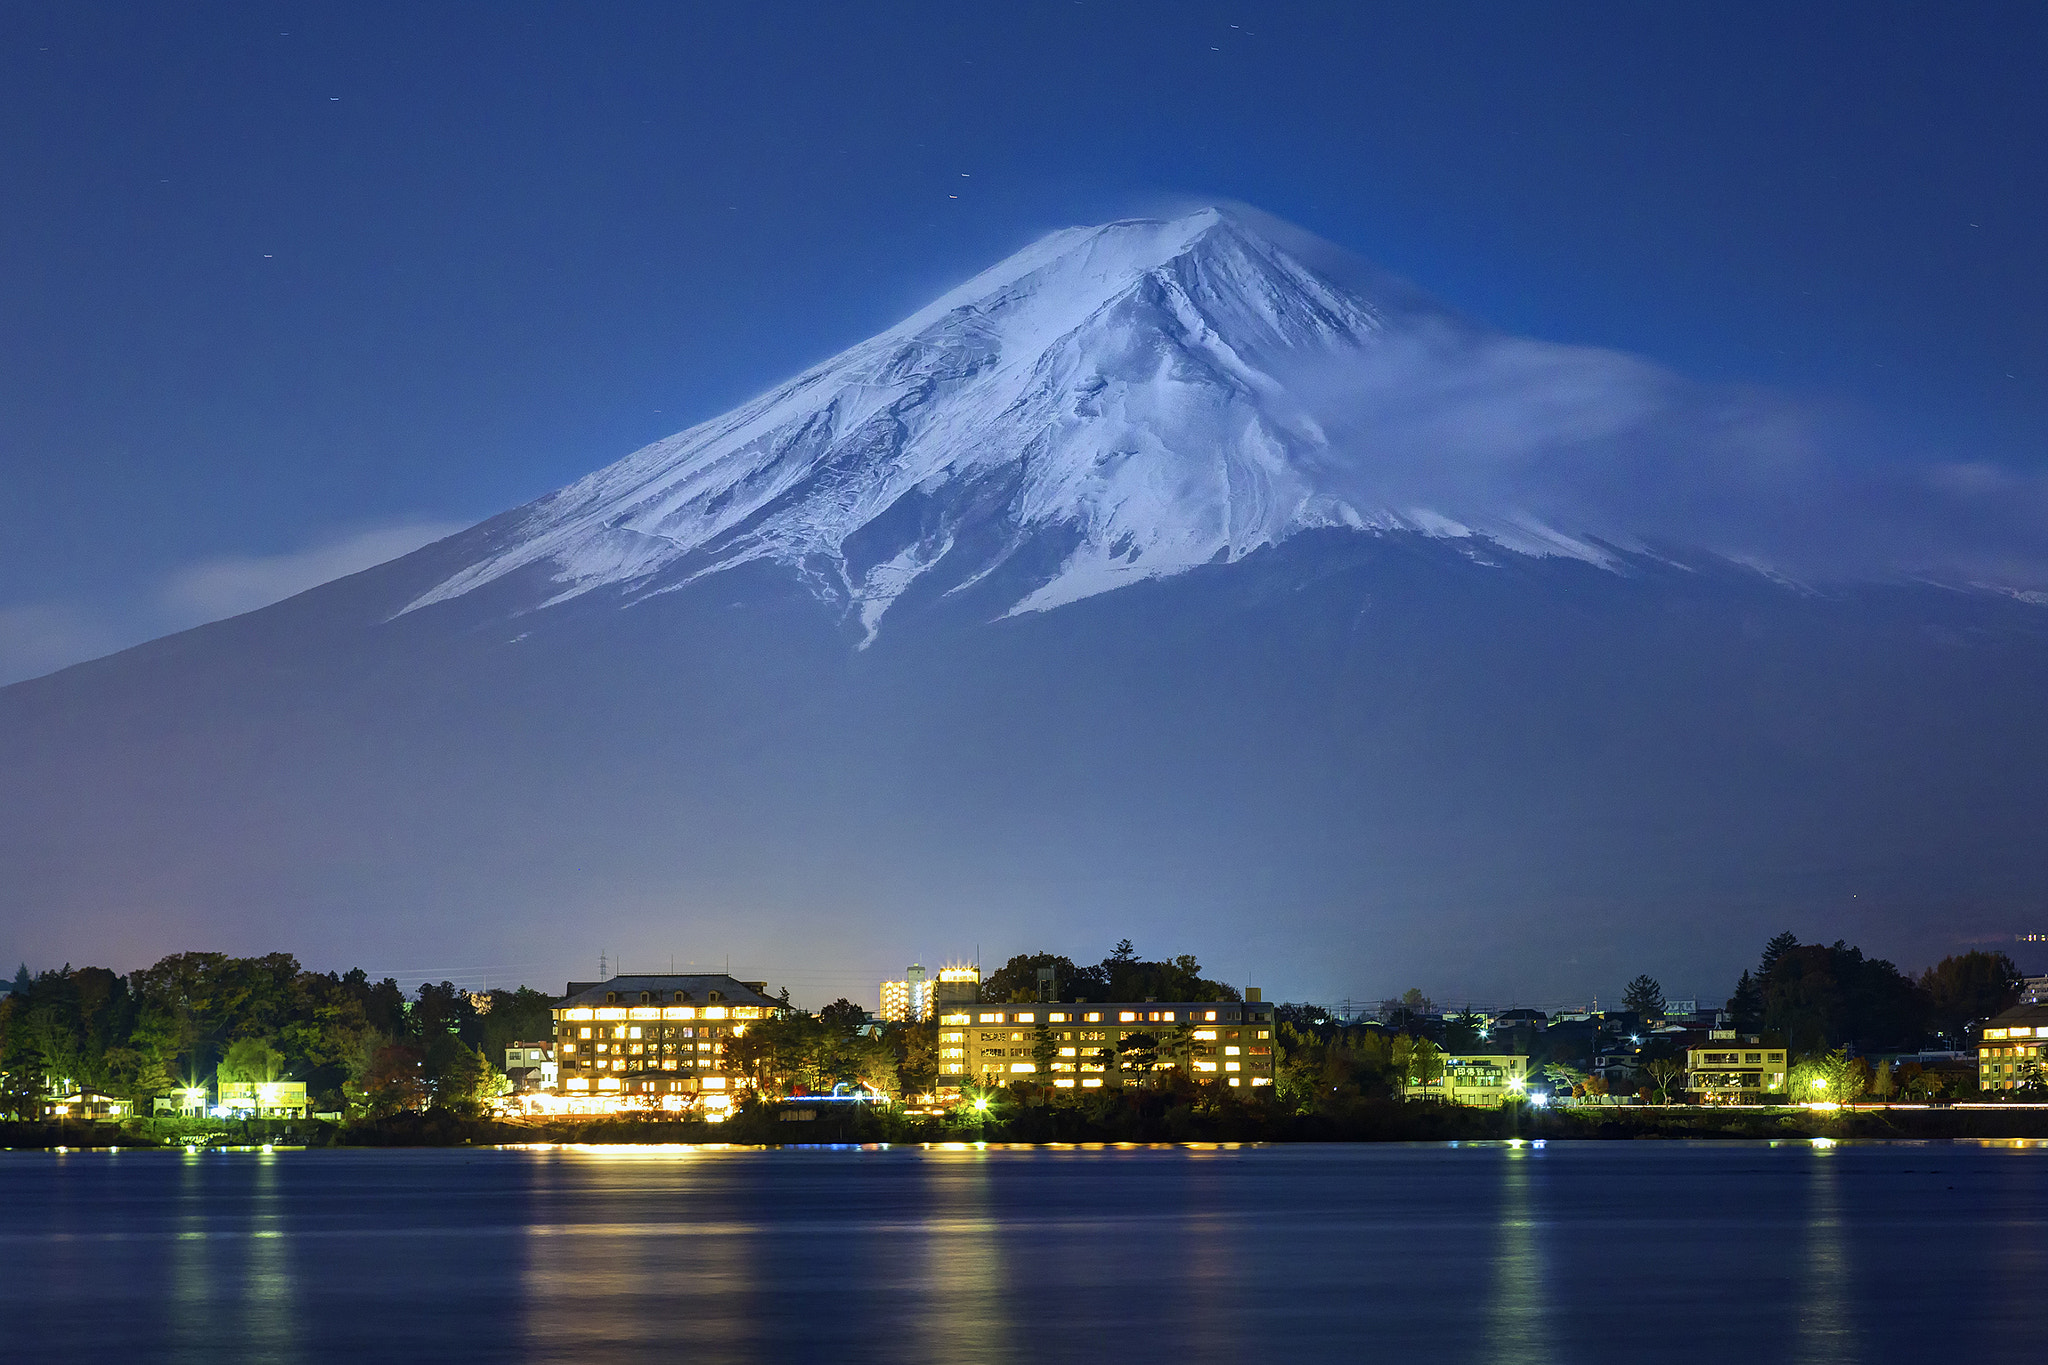 Photograph Moonlit Fujisan by Chaluntorn Preeyasombat on 500px